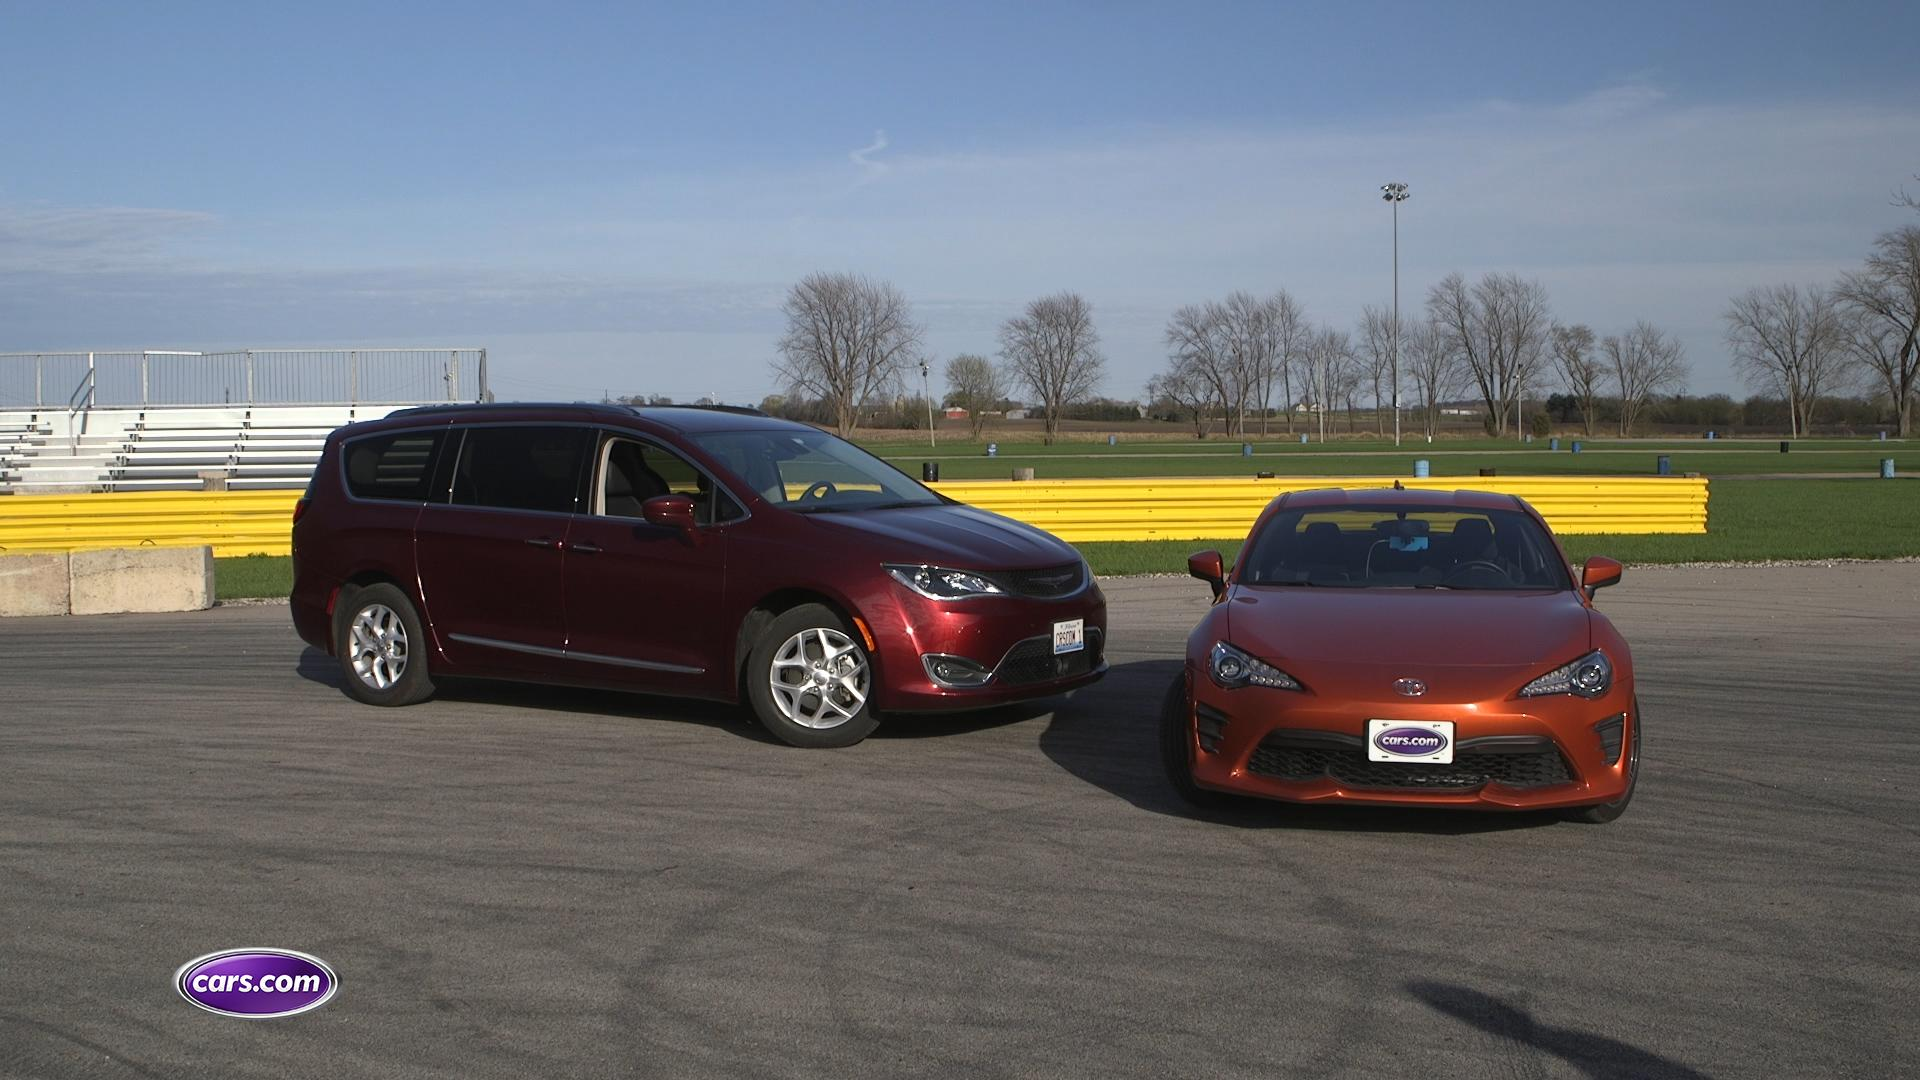 Video: Dragstrip Challenge: 2017 Chrysler Pacifica vs. 2017 Toyota 86